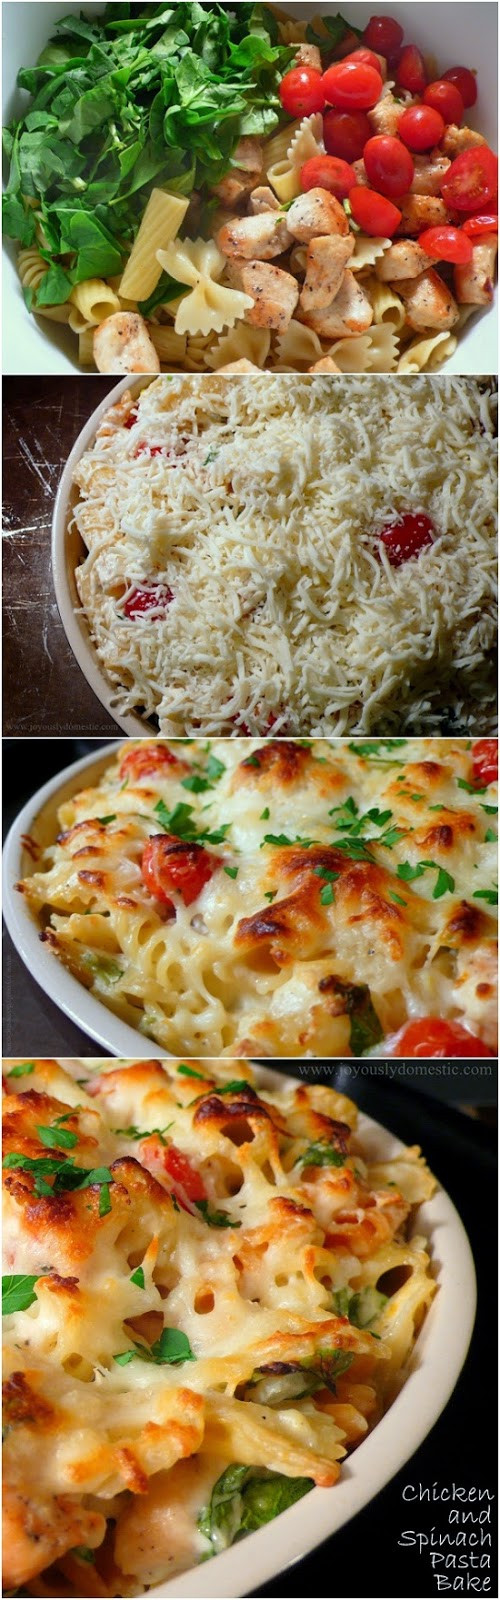 Chicken And Spinach Casserole  all things katie marie Chicken & Spinach Pasta Bake